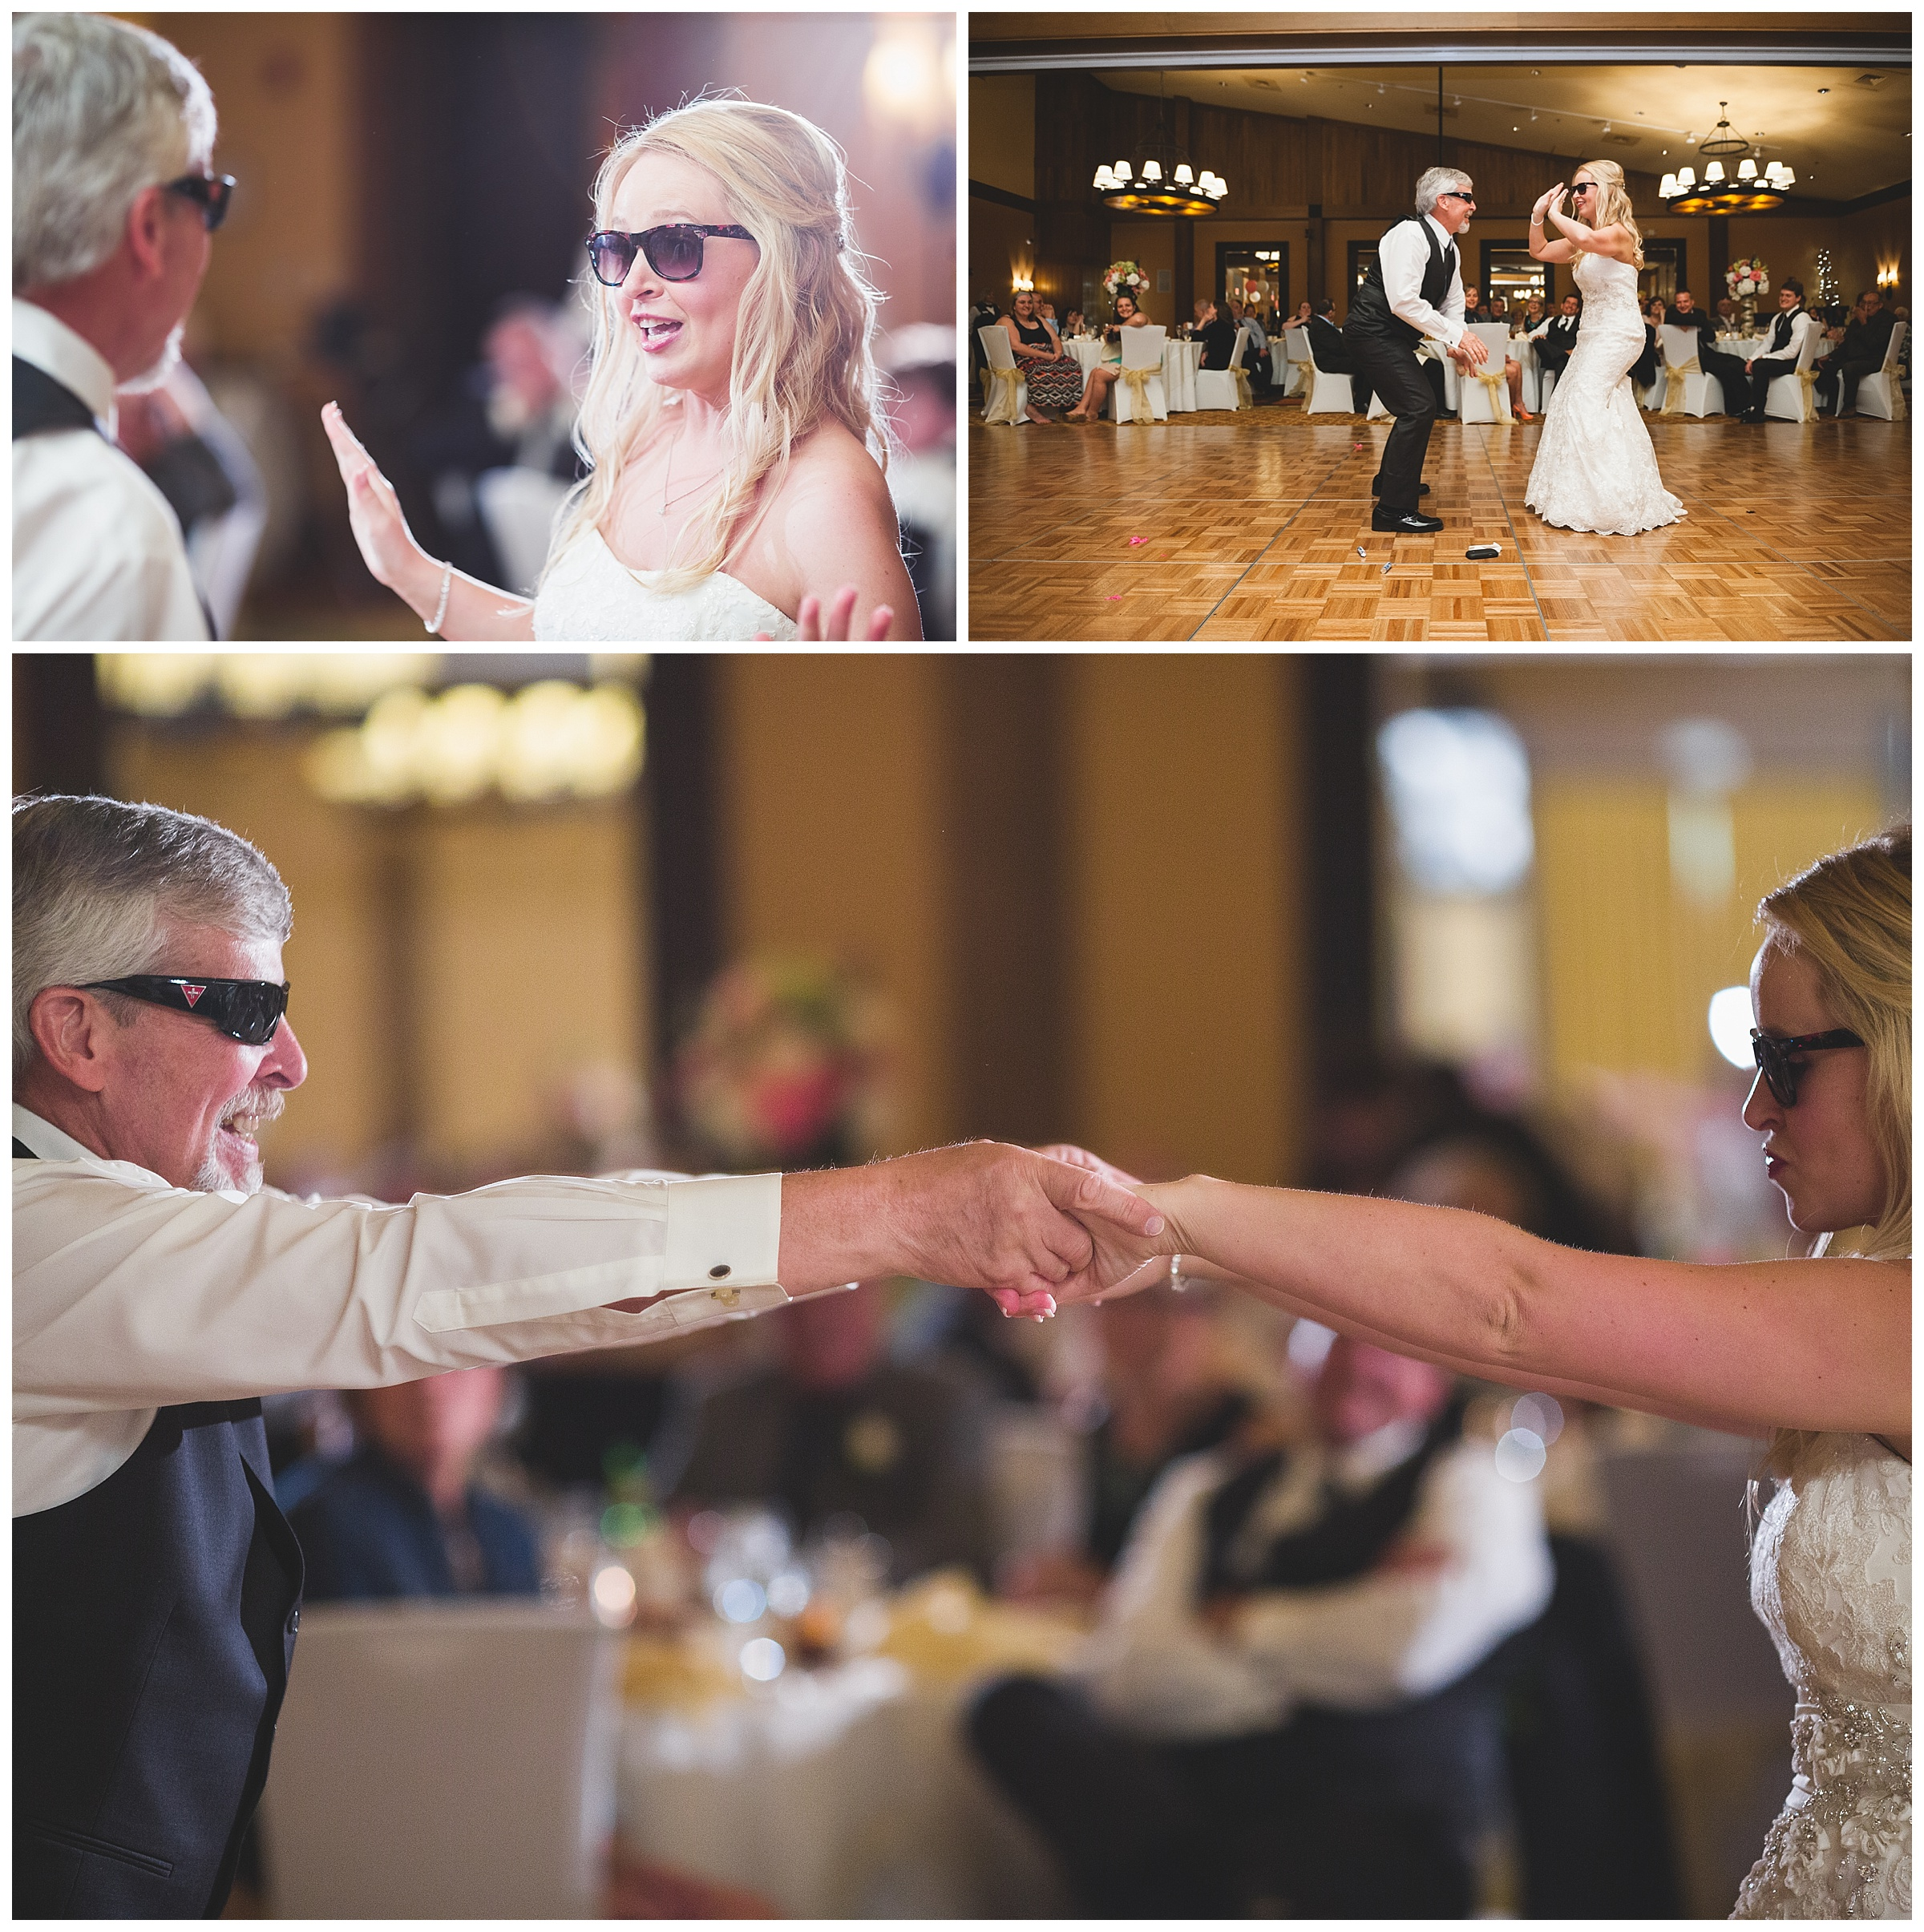 0056_Kelly and Josh's Wedding, Bear Creek Resort, PA_0056